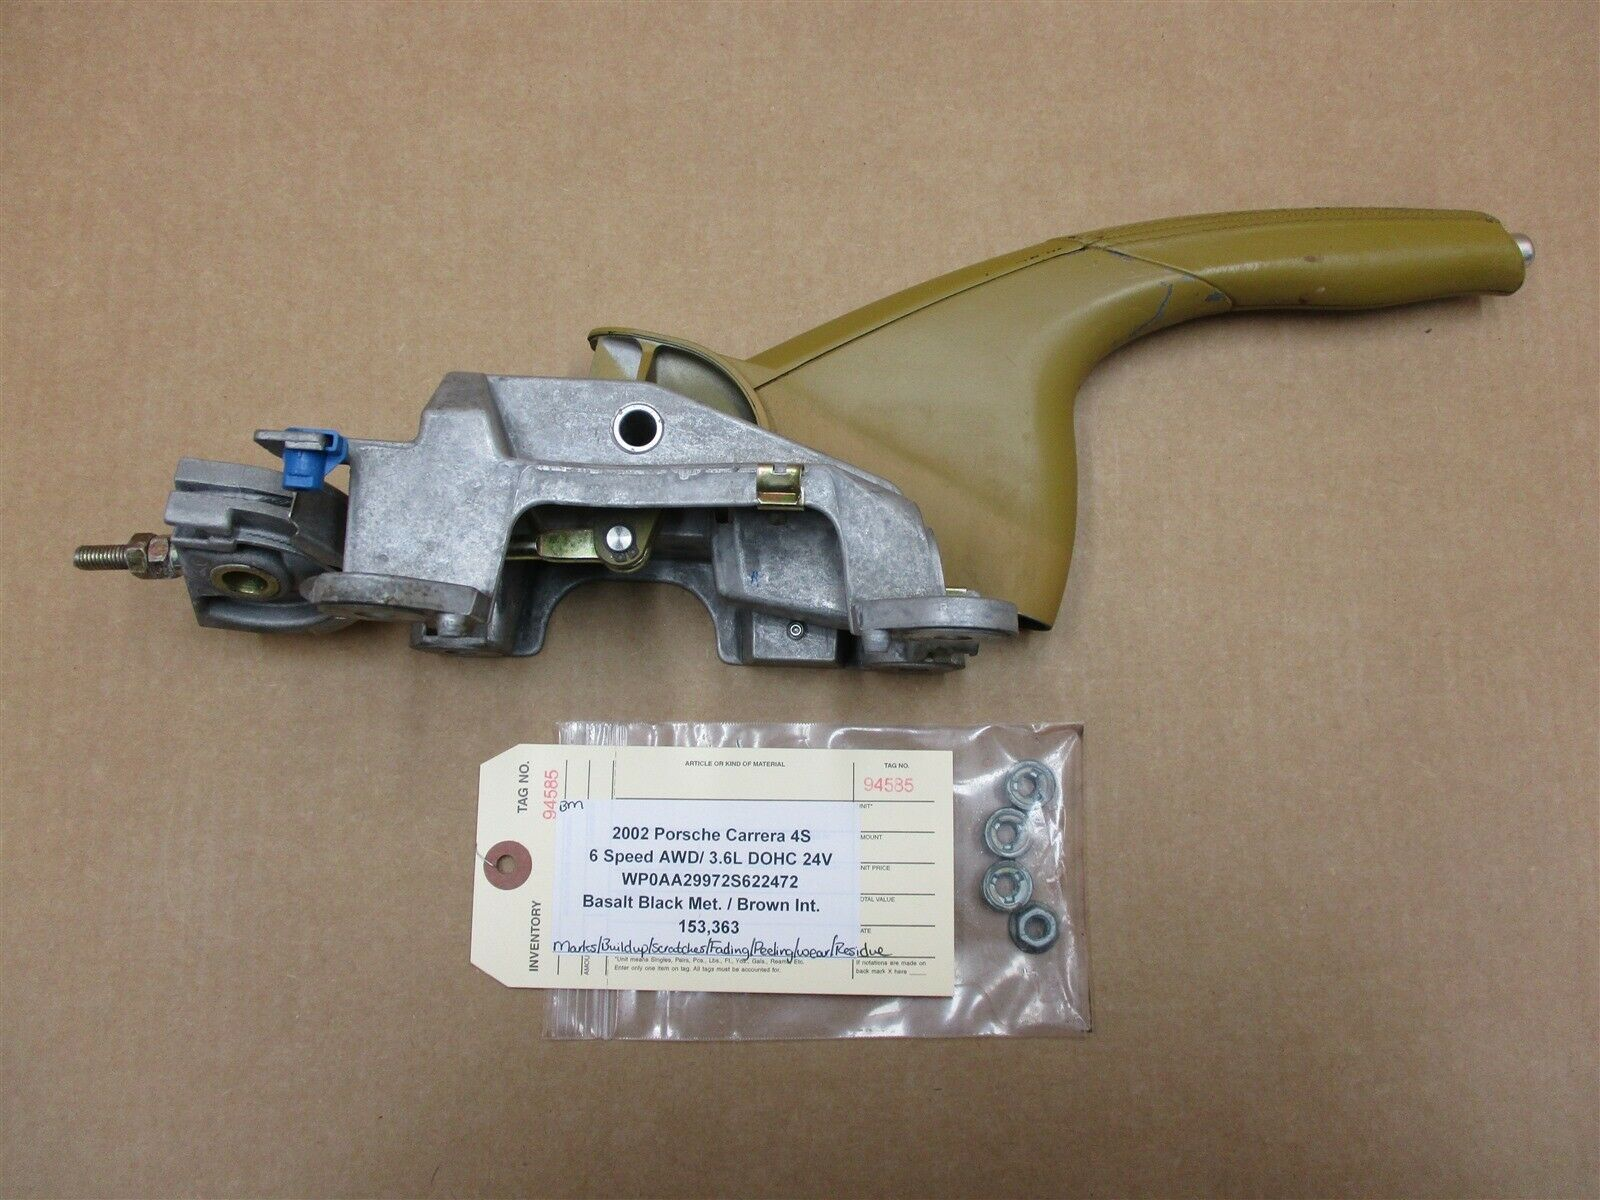 02 Carrera 4S 911 AWD Porsche 996 EBRAKE HANDLE 99642436101 96442456800 153,363